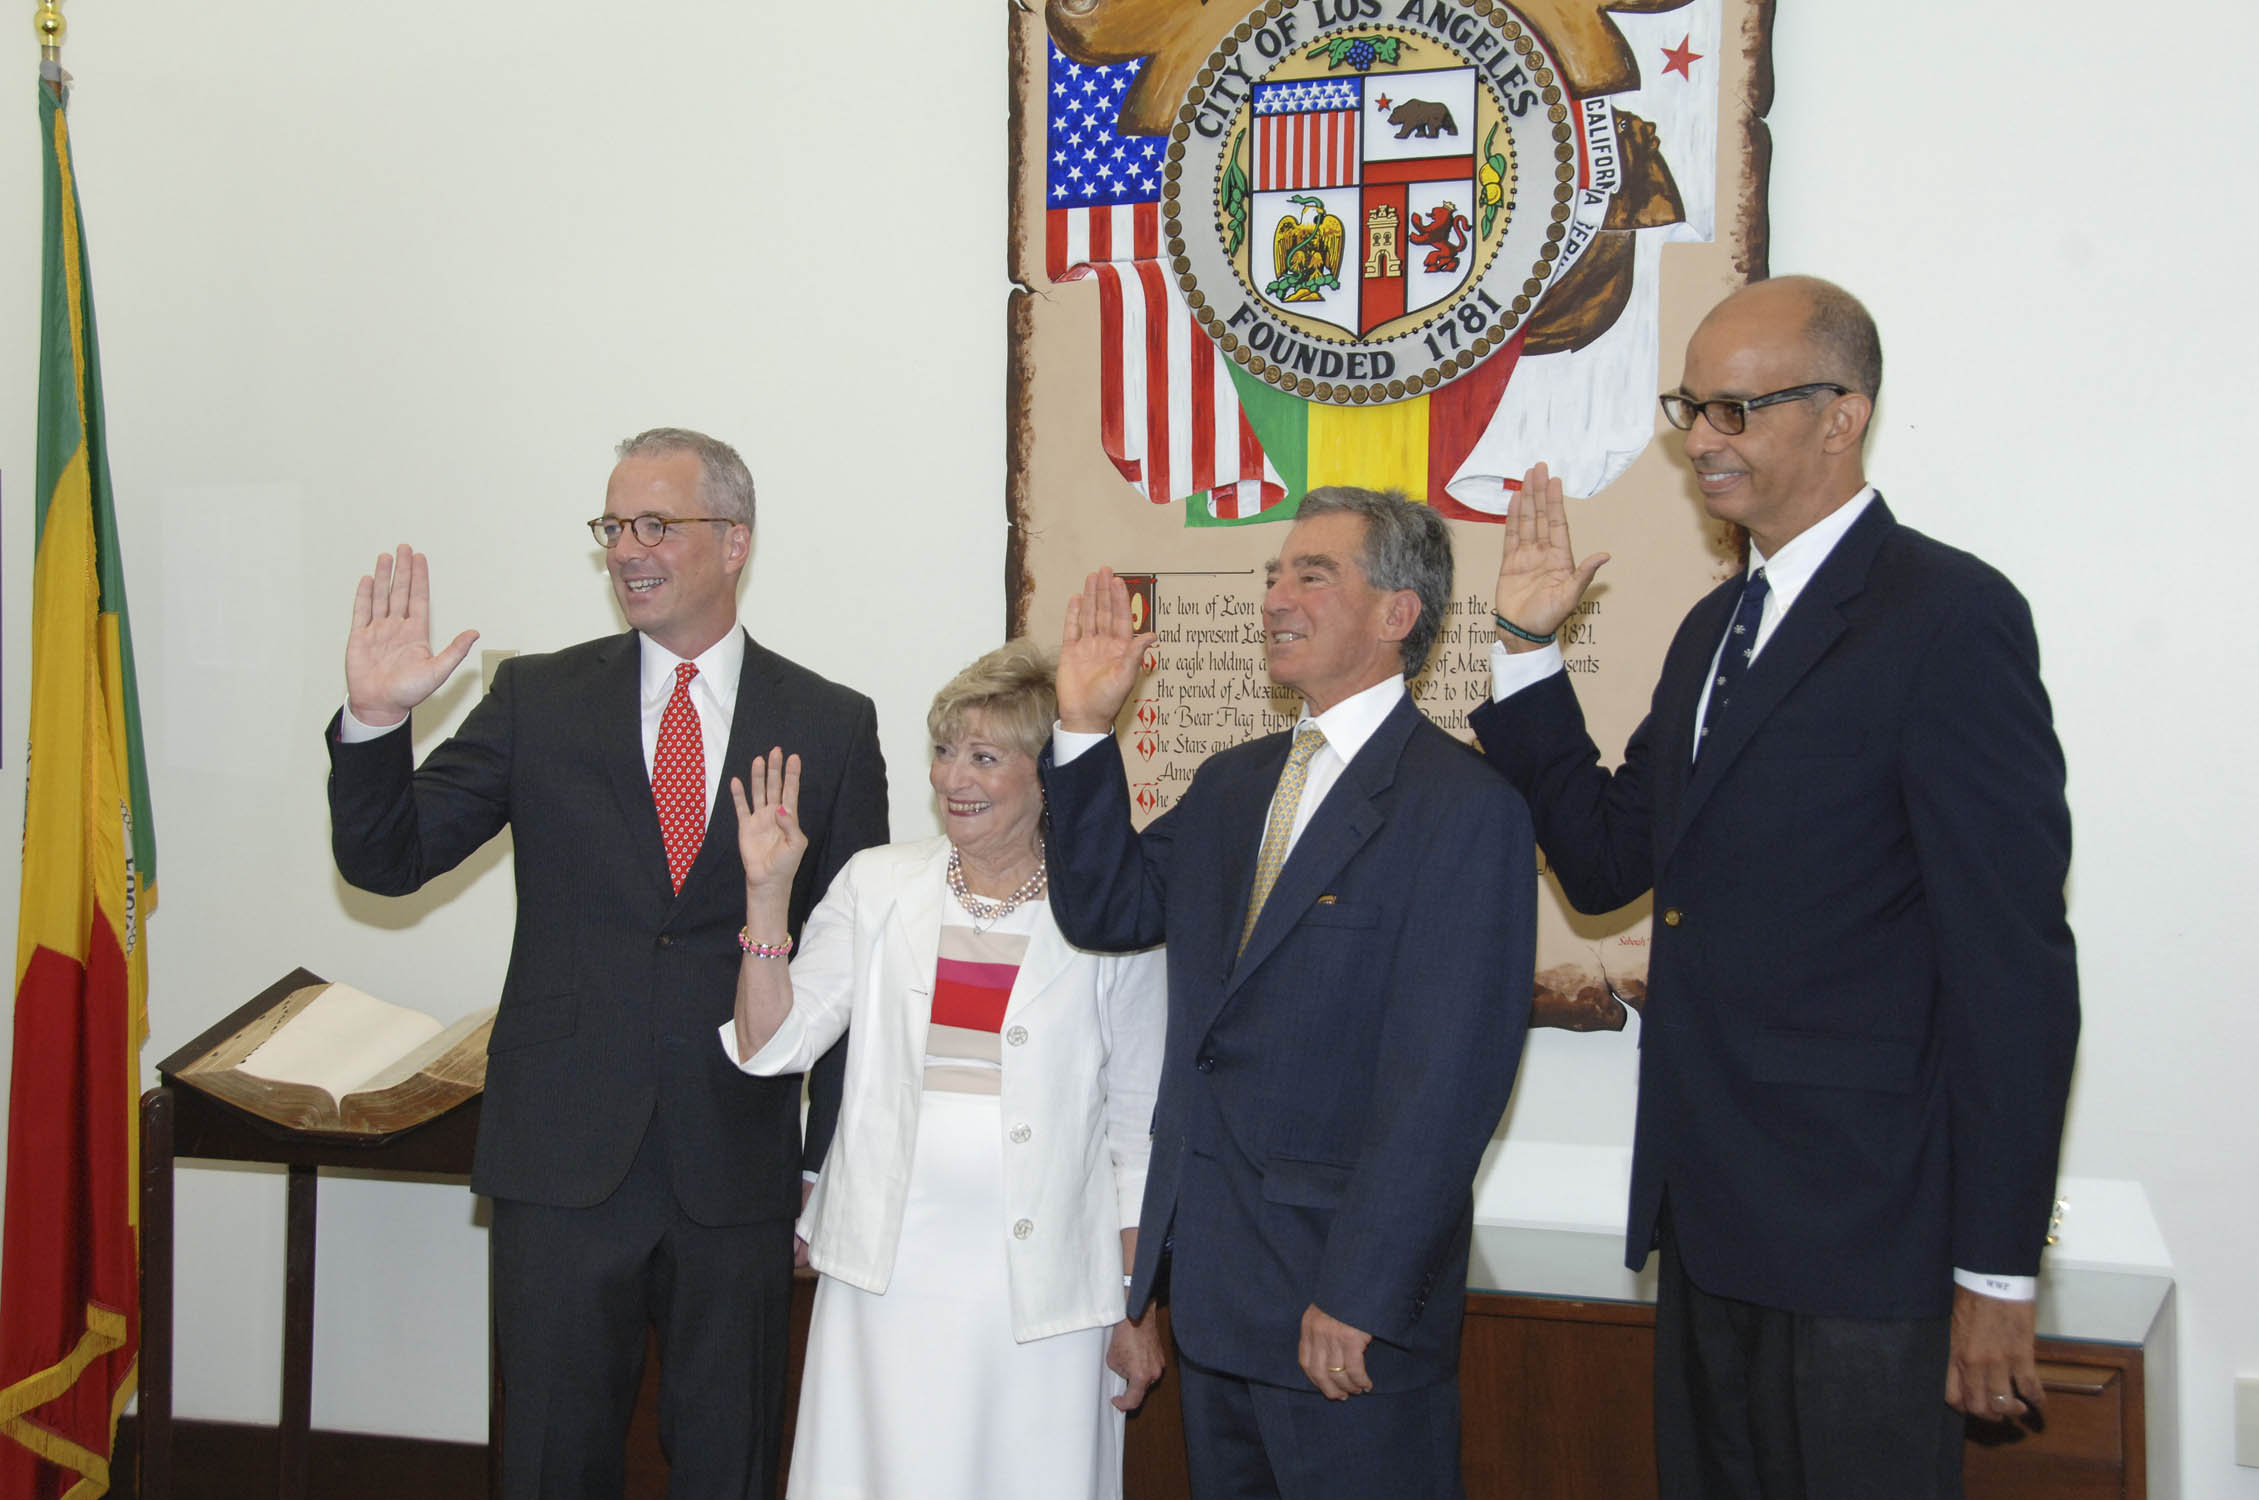 William Funderburk – A Champion for the People - Los Angeles